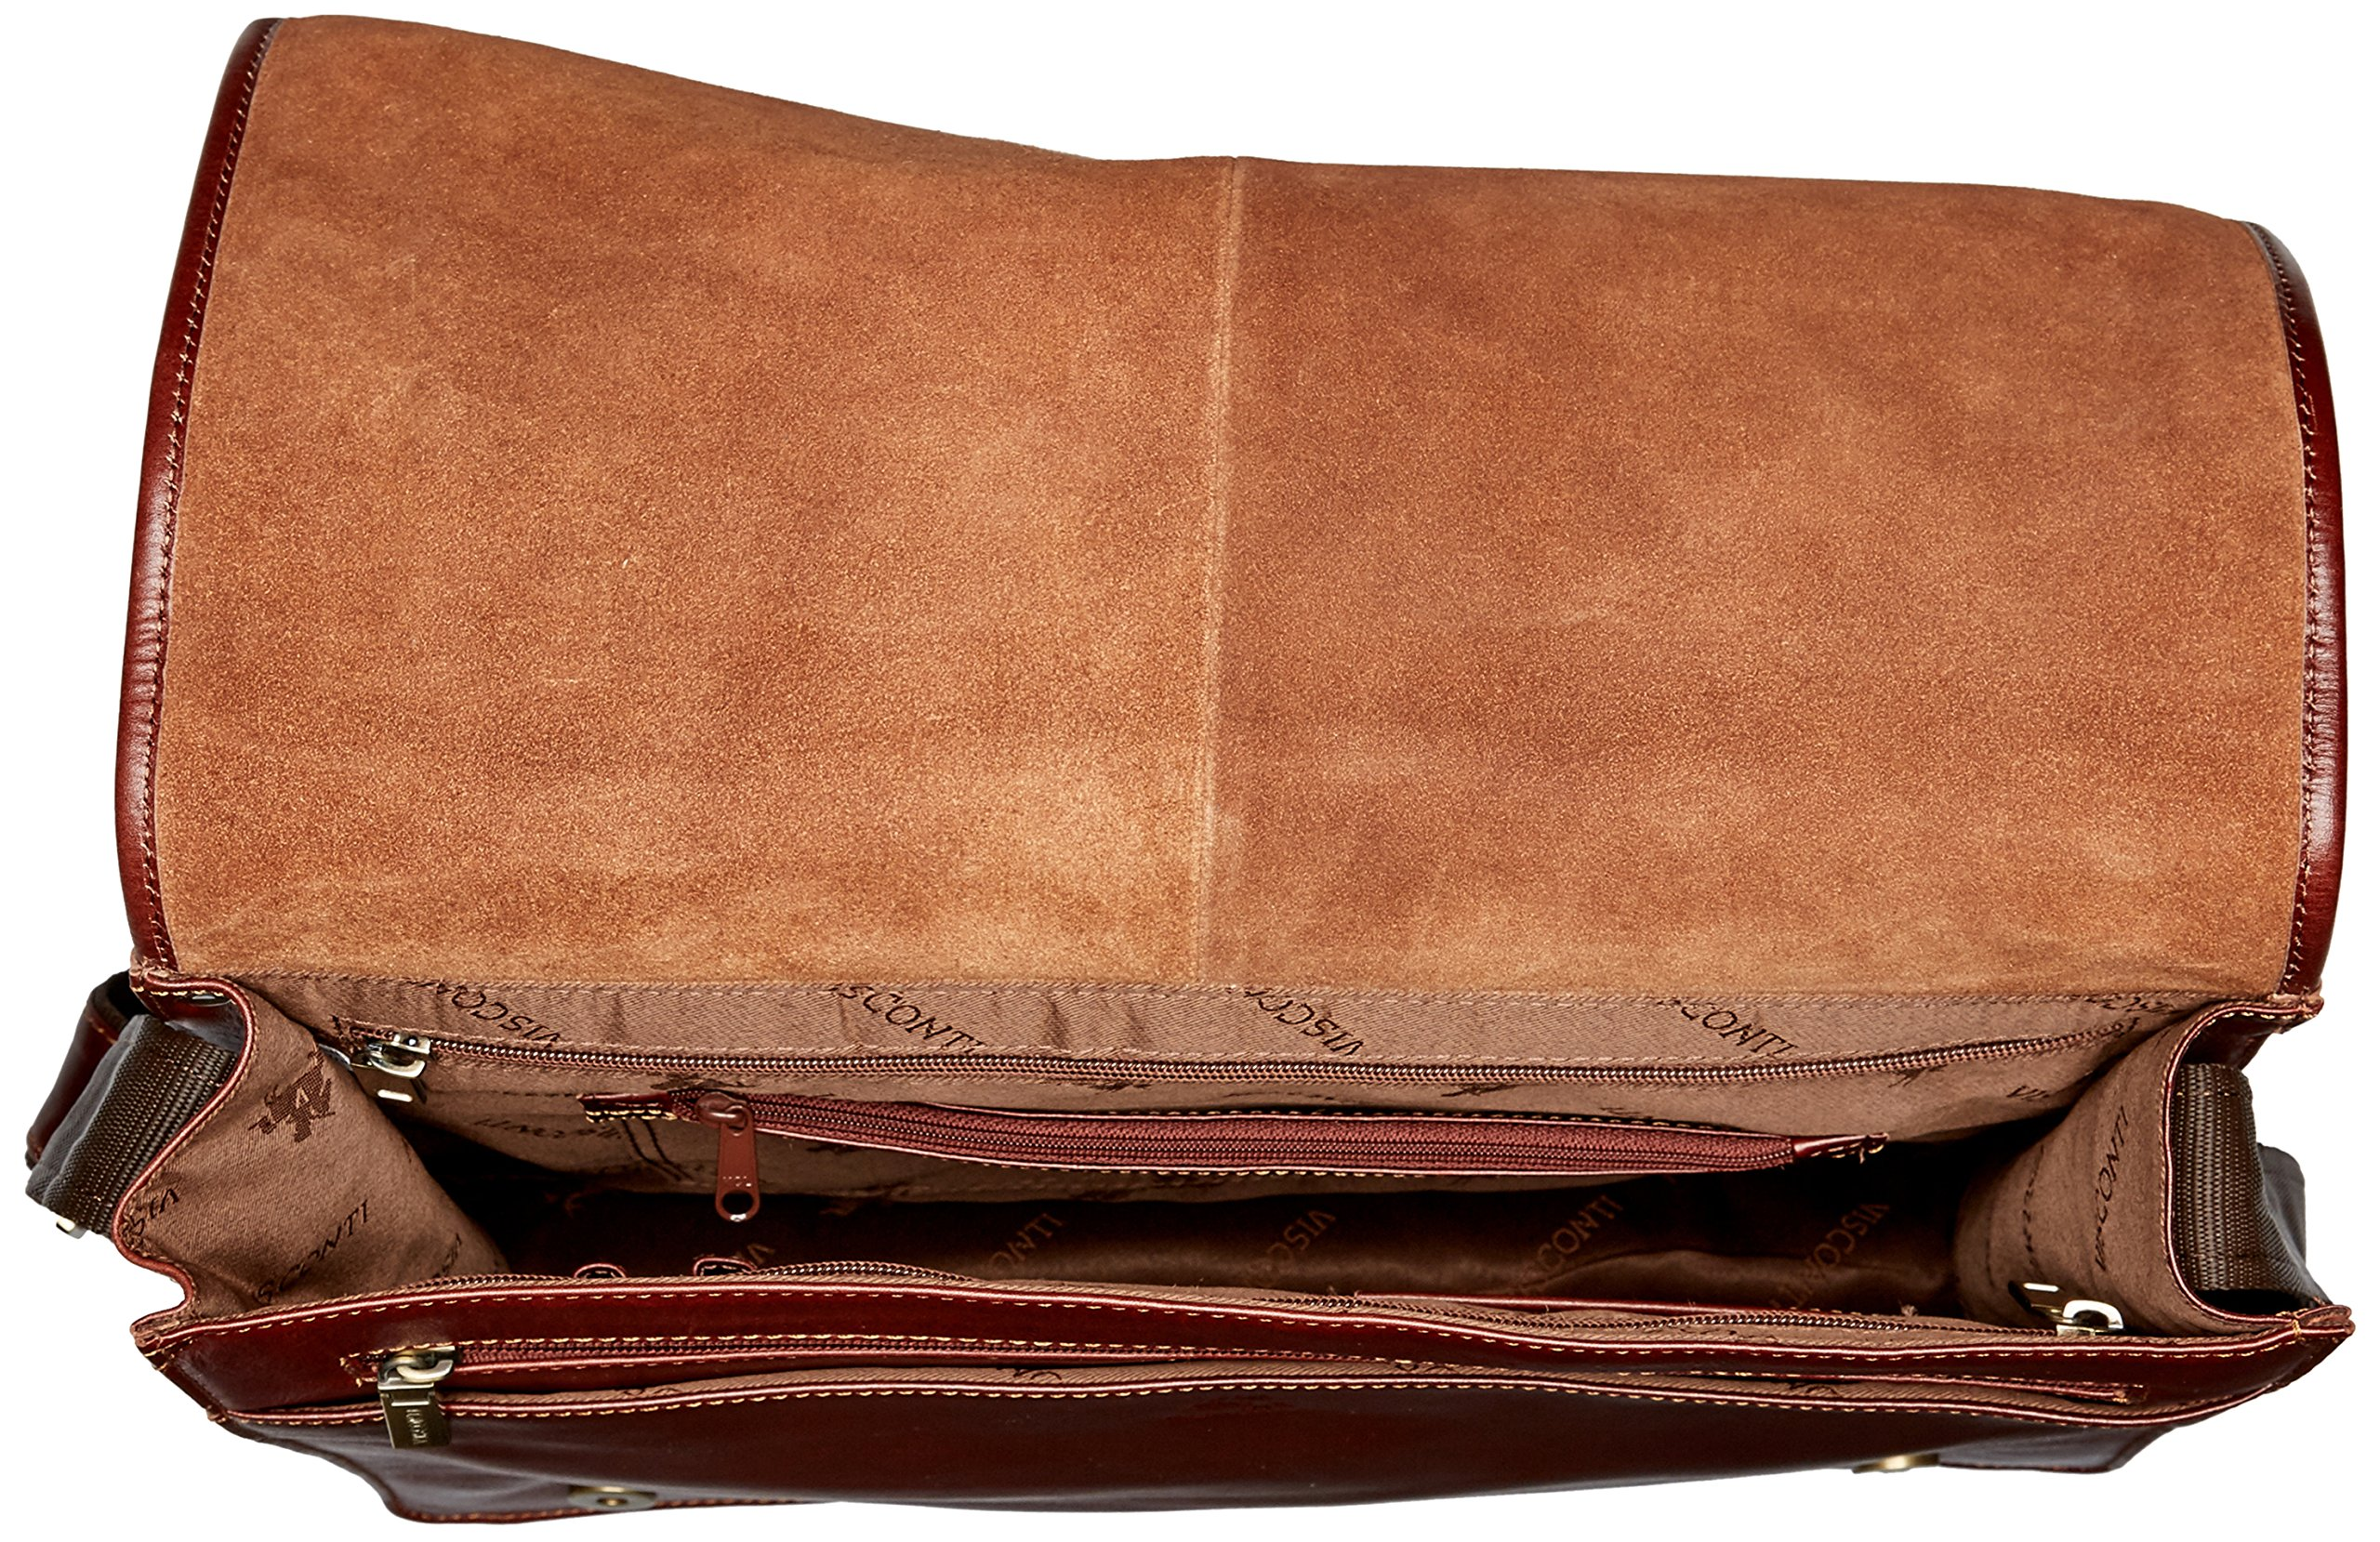 Visconti Vintage-7 Veg Tan Brown Soft Leather Messenger Bag Case, Brown, One Size by Visconti (Image #5)